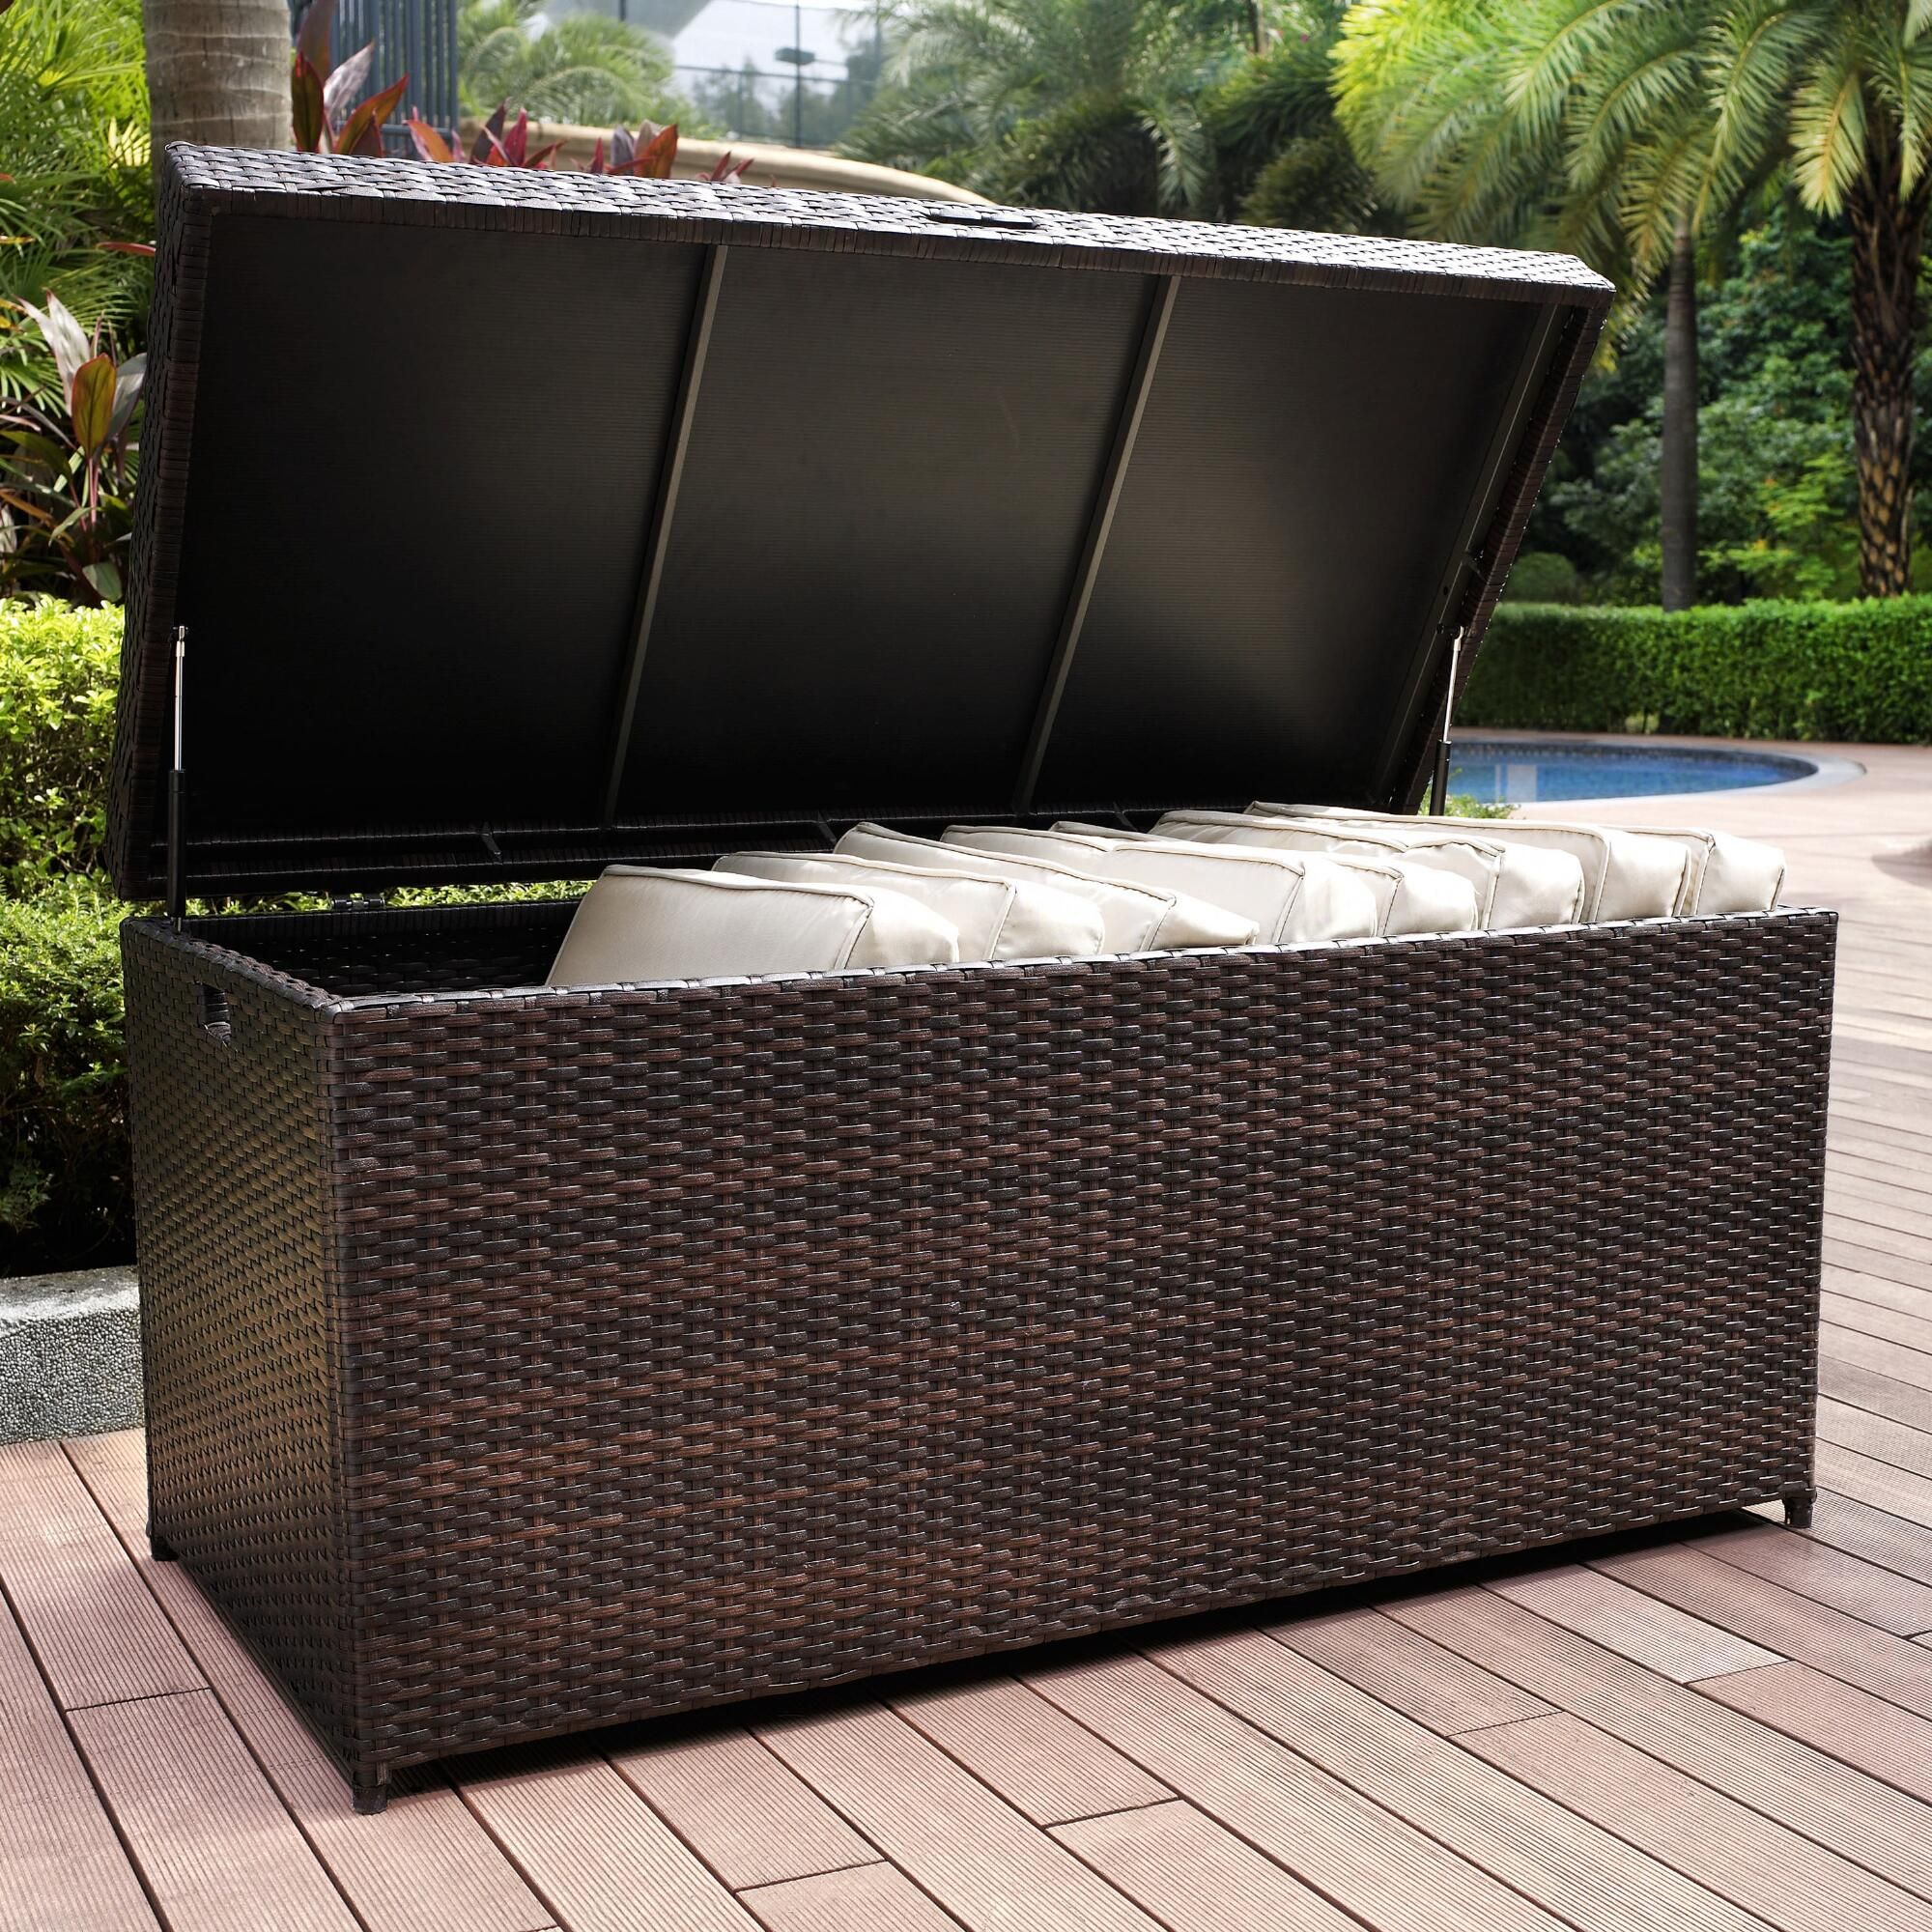 Pinamar Storage Chest Patio Storage Outdoor Storage Bin